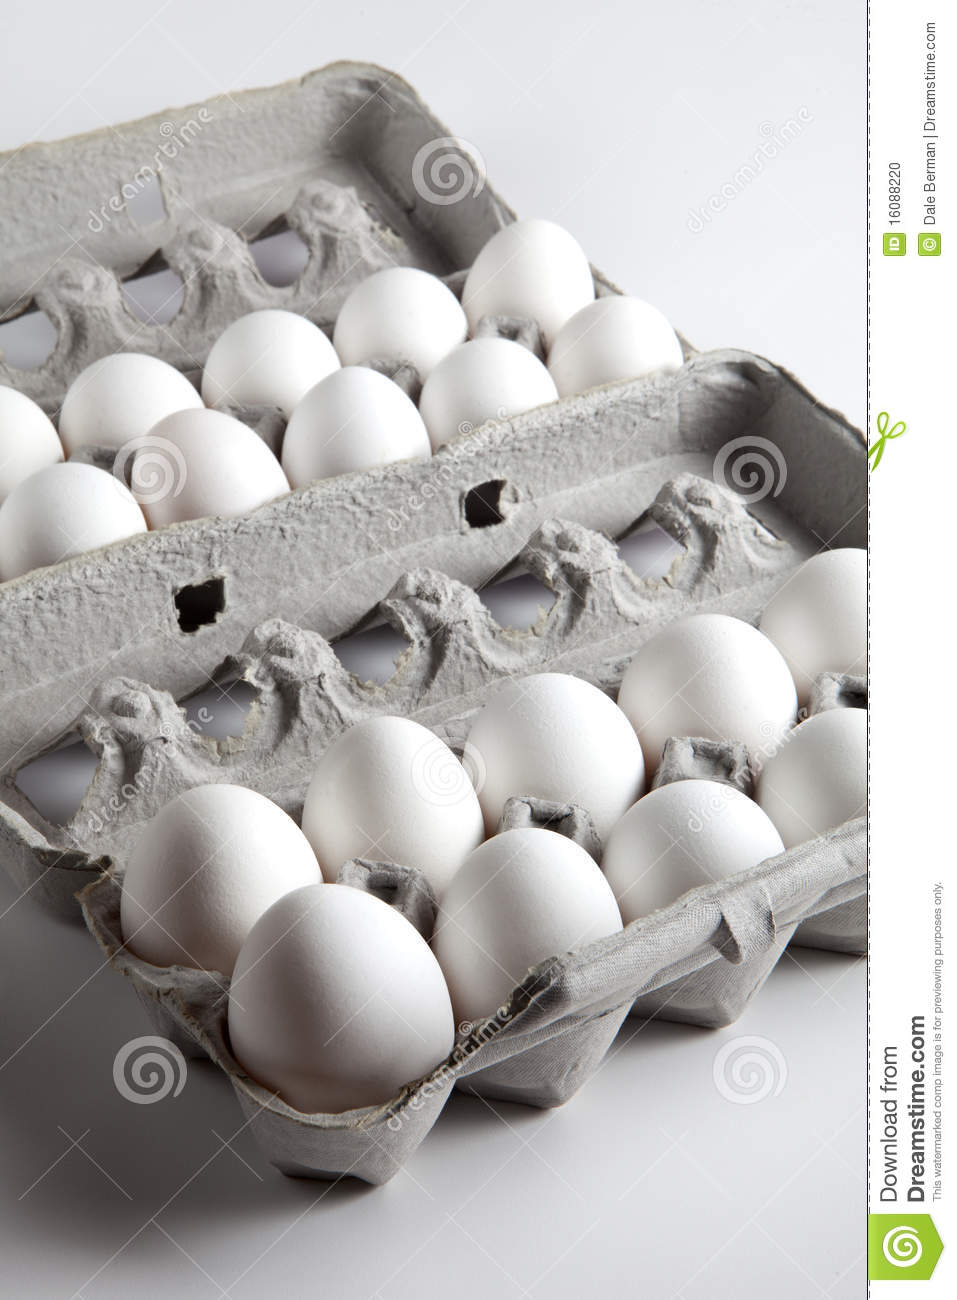 Two Dozen White Eggs Inside Egg Cartons Stock Photo ...